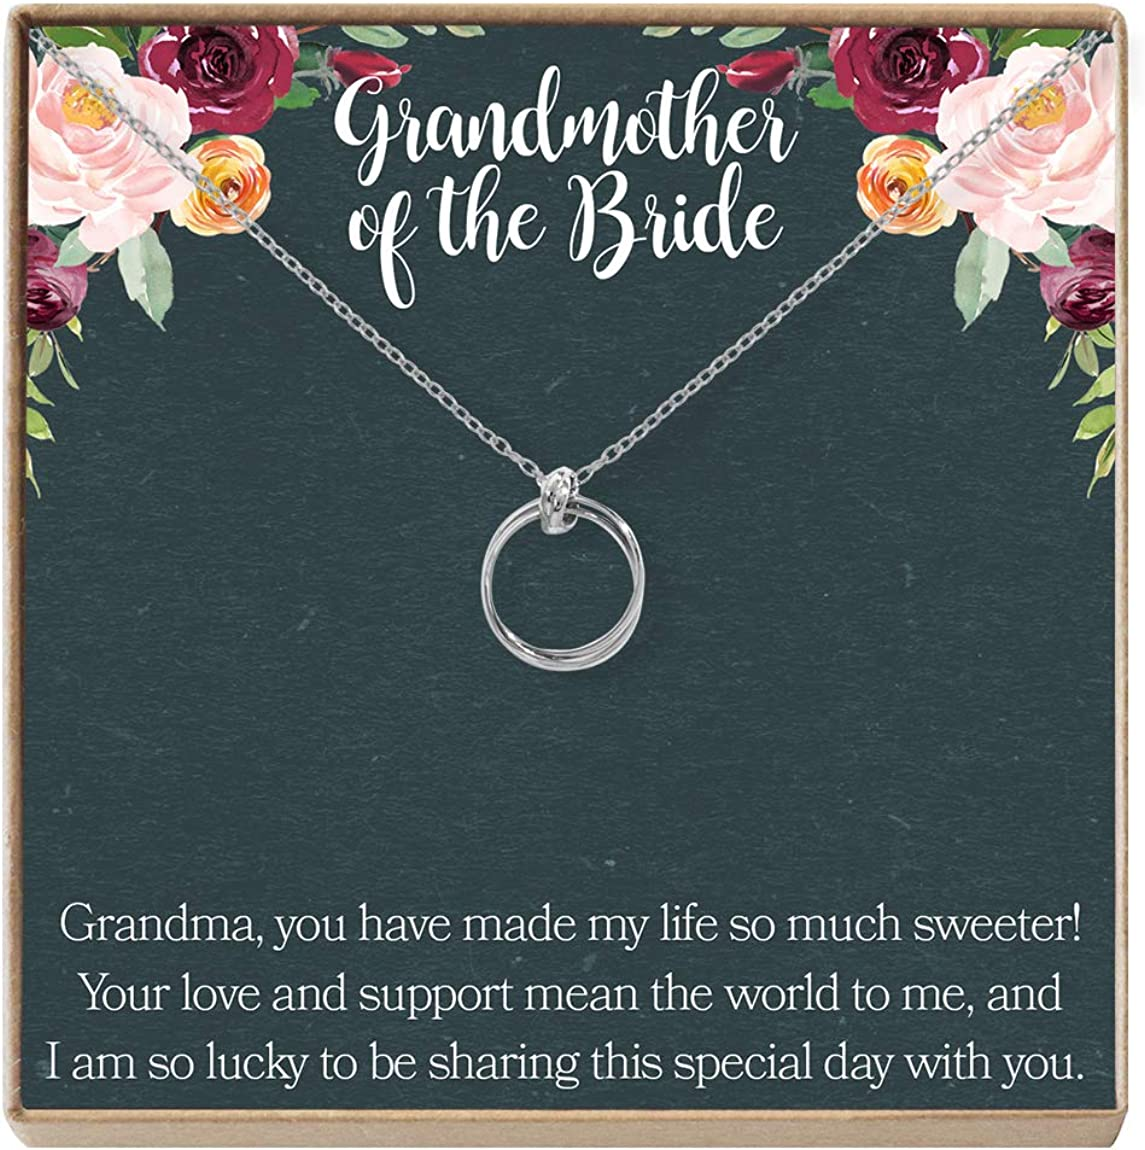 Grandmother of Nippon regular agency the Bride Max 88% OFF Gift Grandma Shower Wedding Necklace: